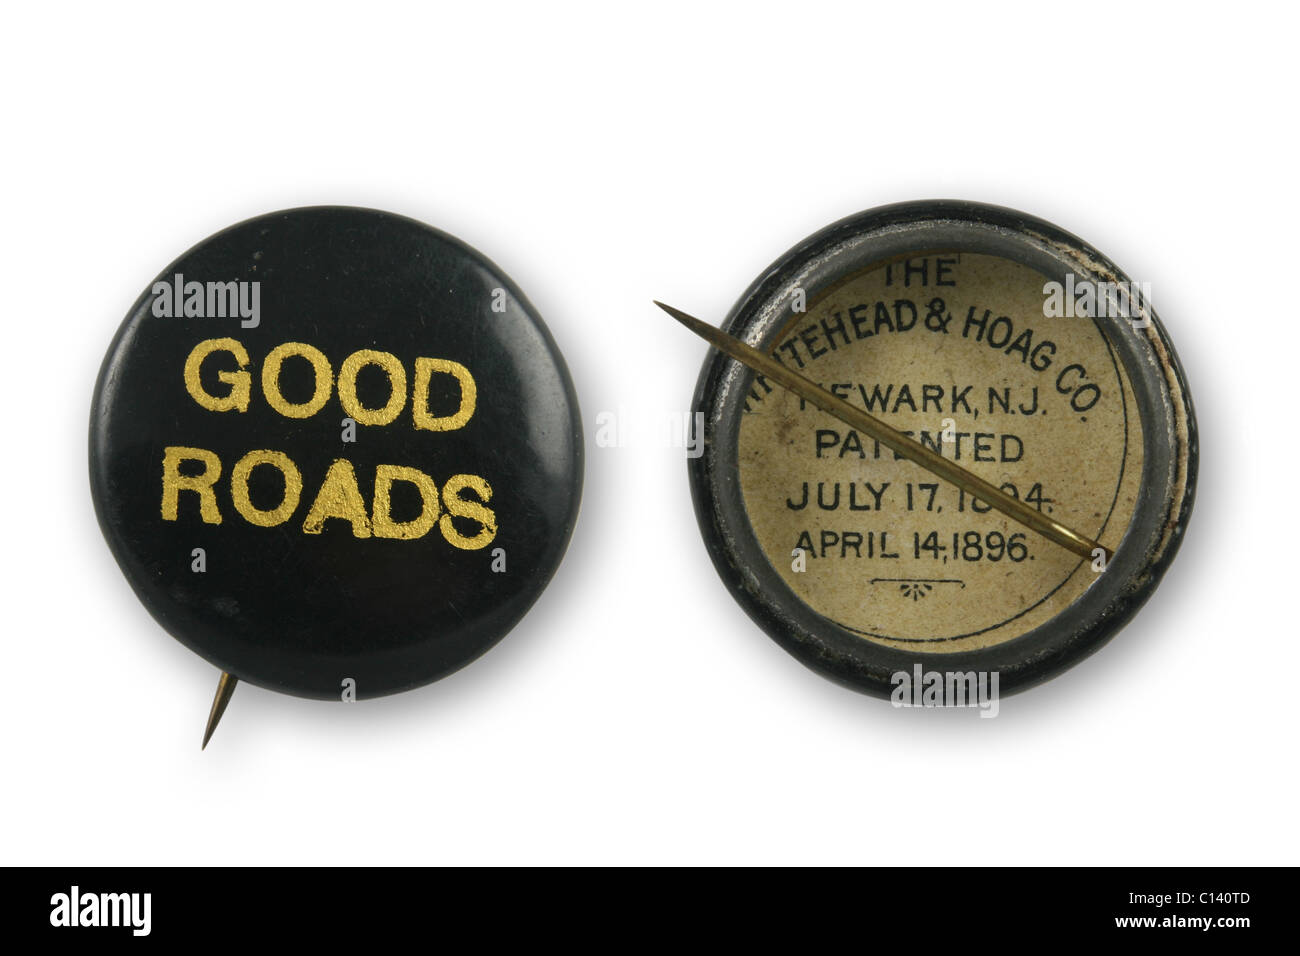 1896 Good Roads pin, front and back composite image. - Stock Image